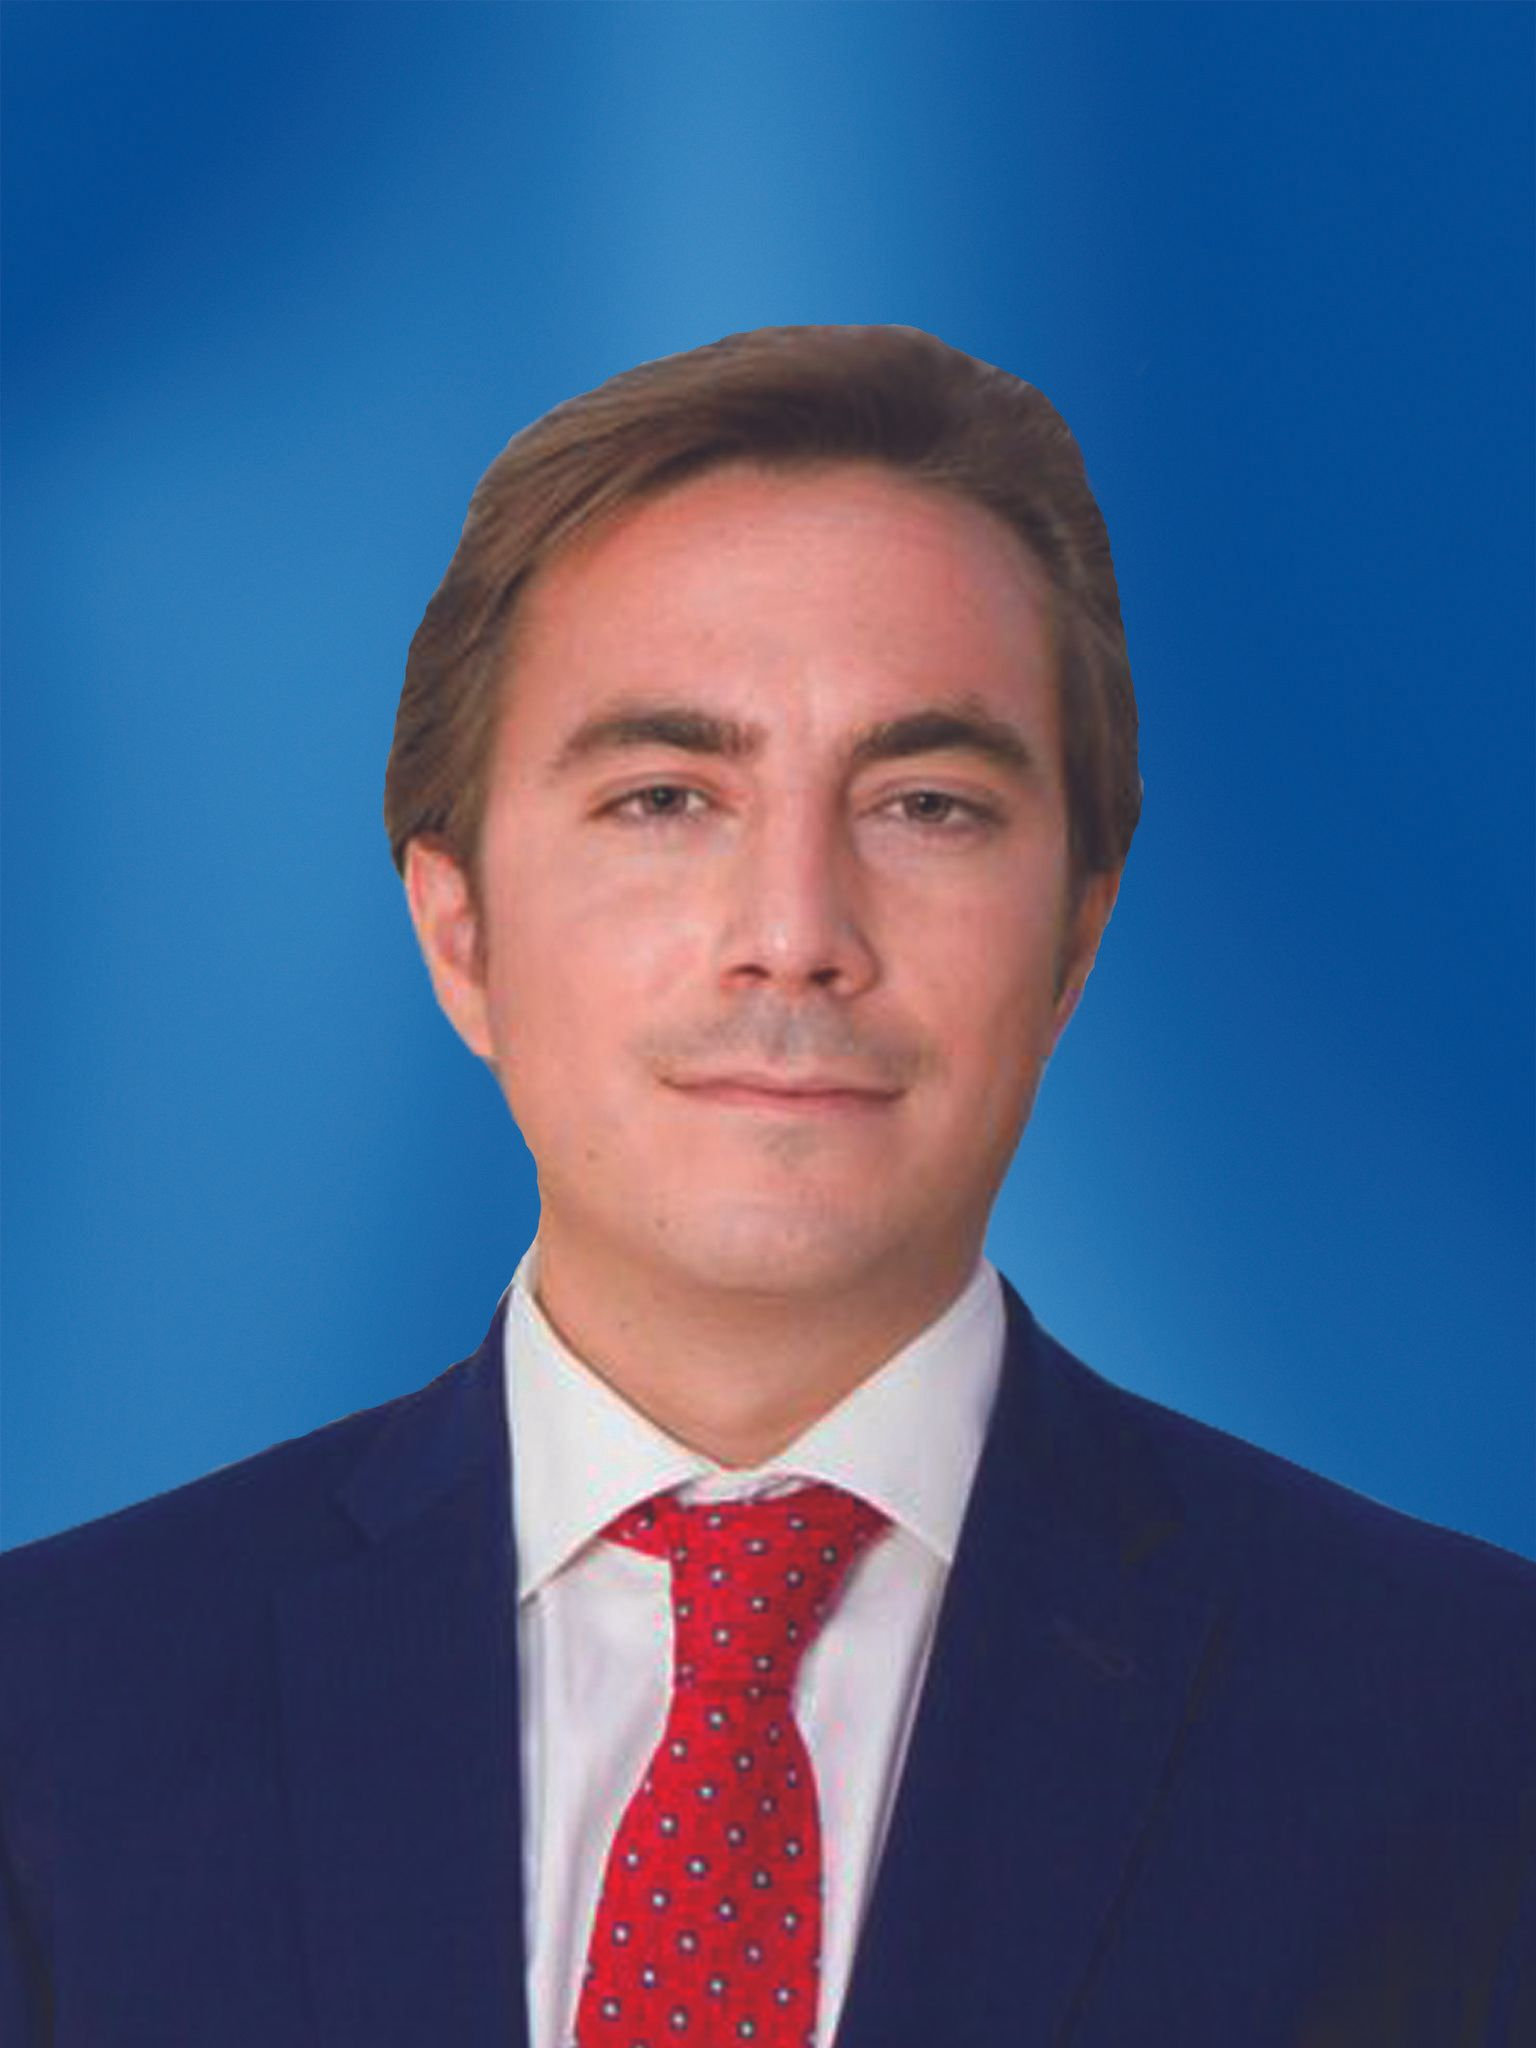 Russell Mifsud